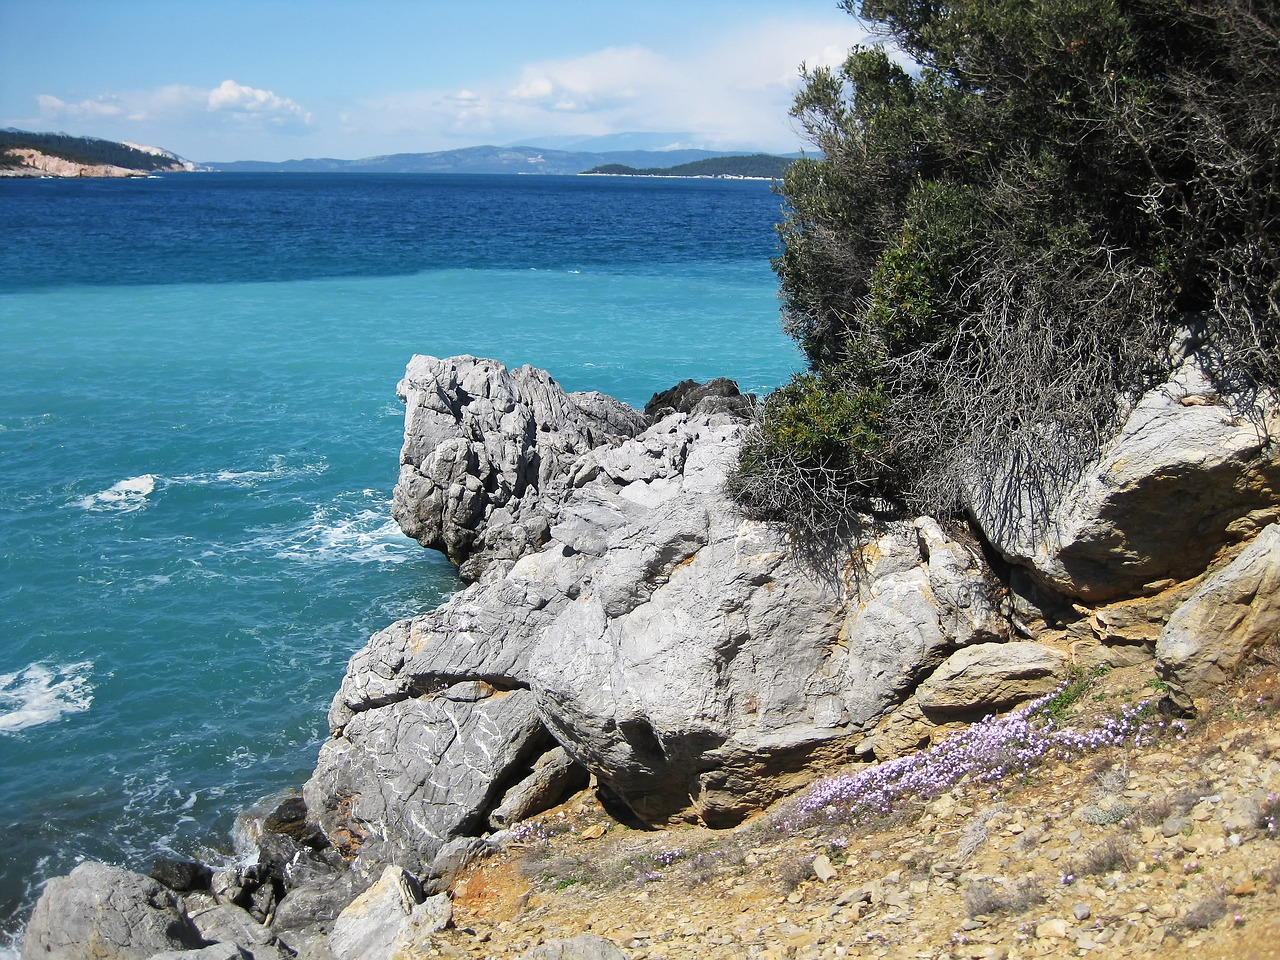 The Rocky Coast of Evia